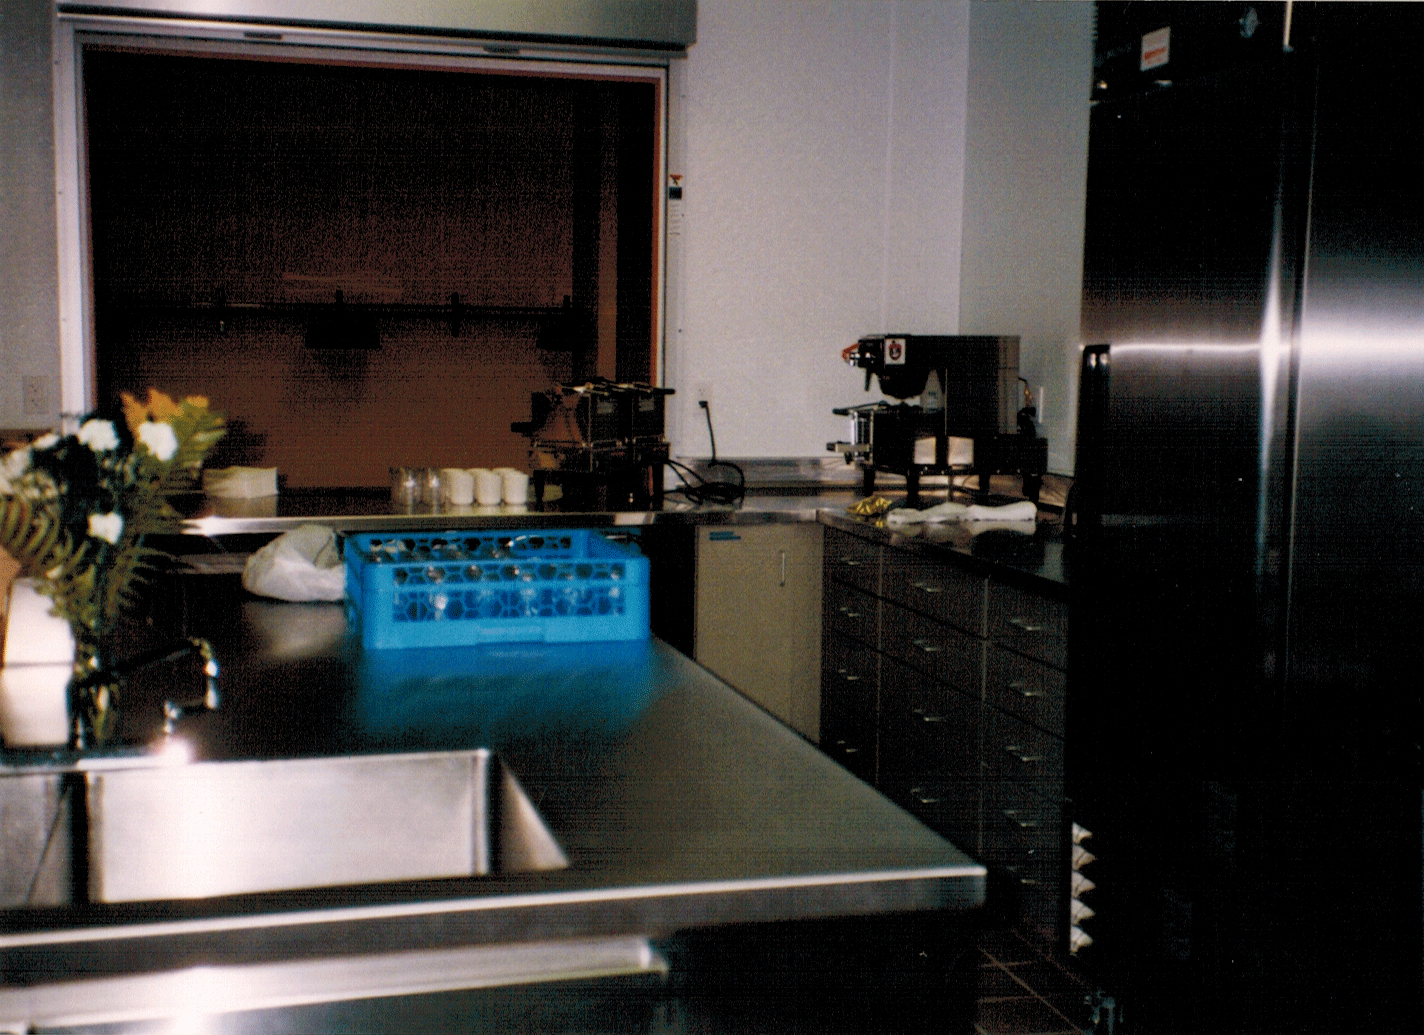 https://0201.nccdn.net/4_2/000/000/038/2d3/kitchen07.png